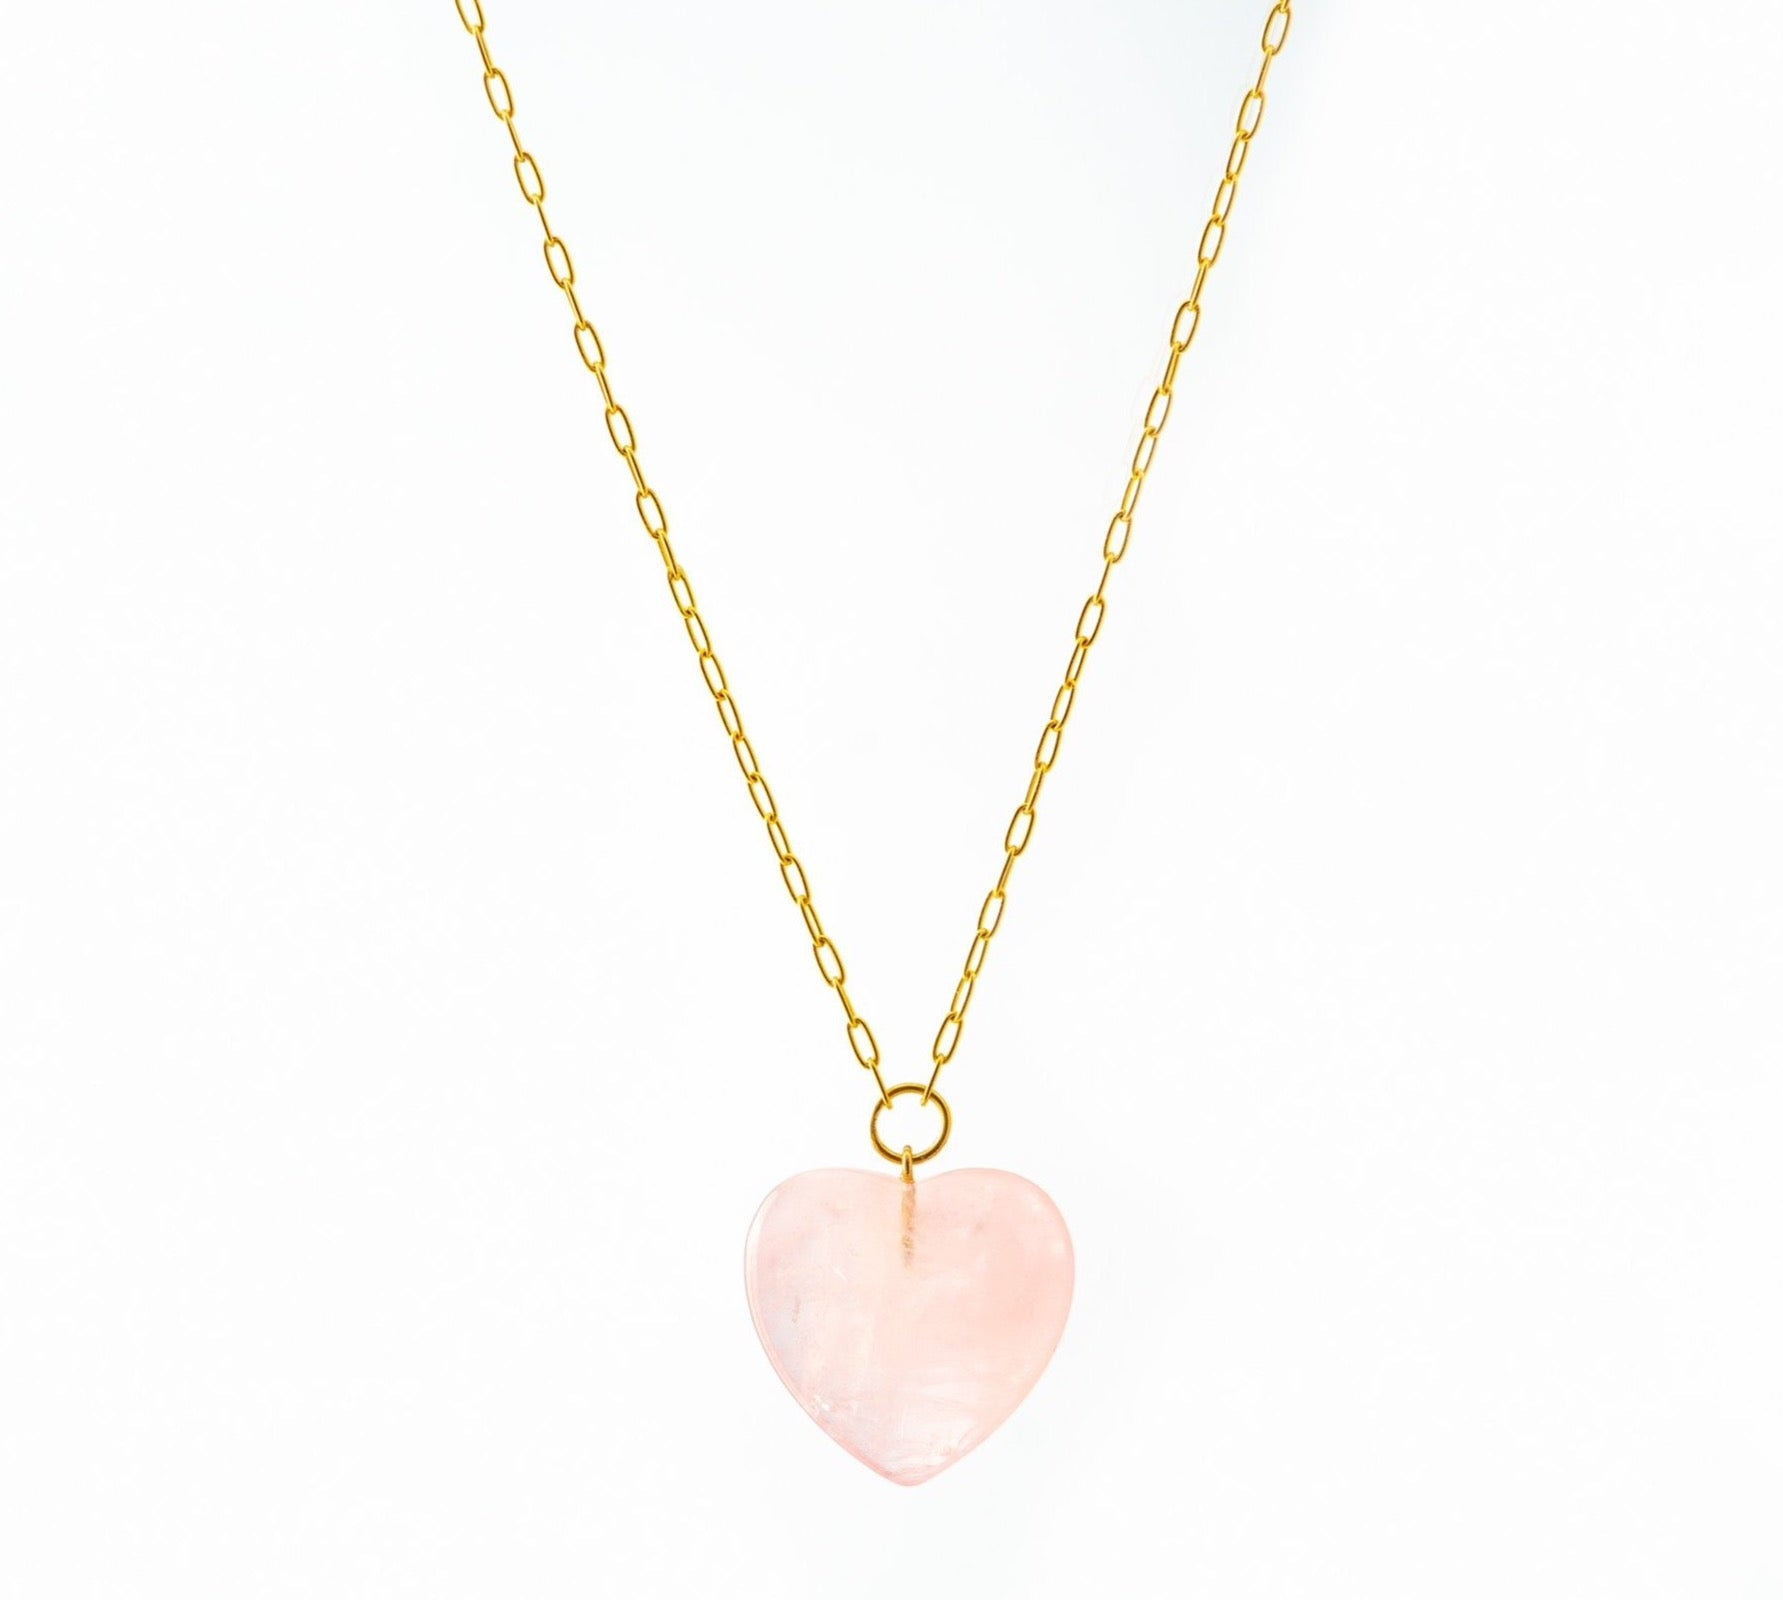 Rose Quartz Heart Pendant on Gold Chain